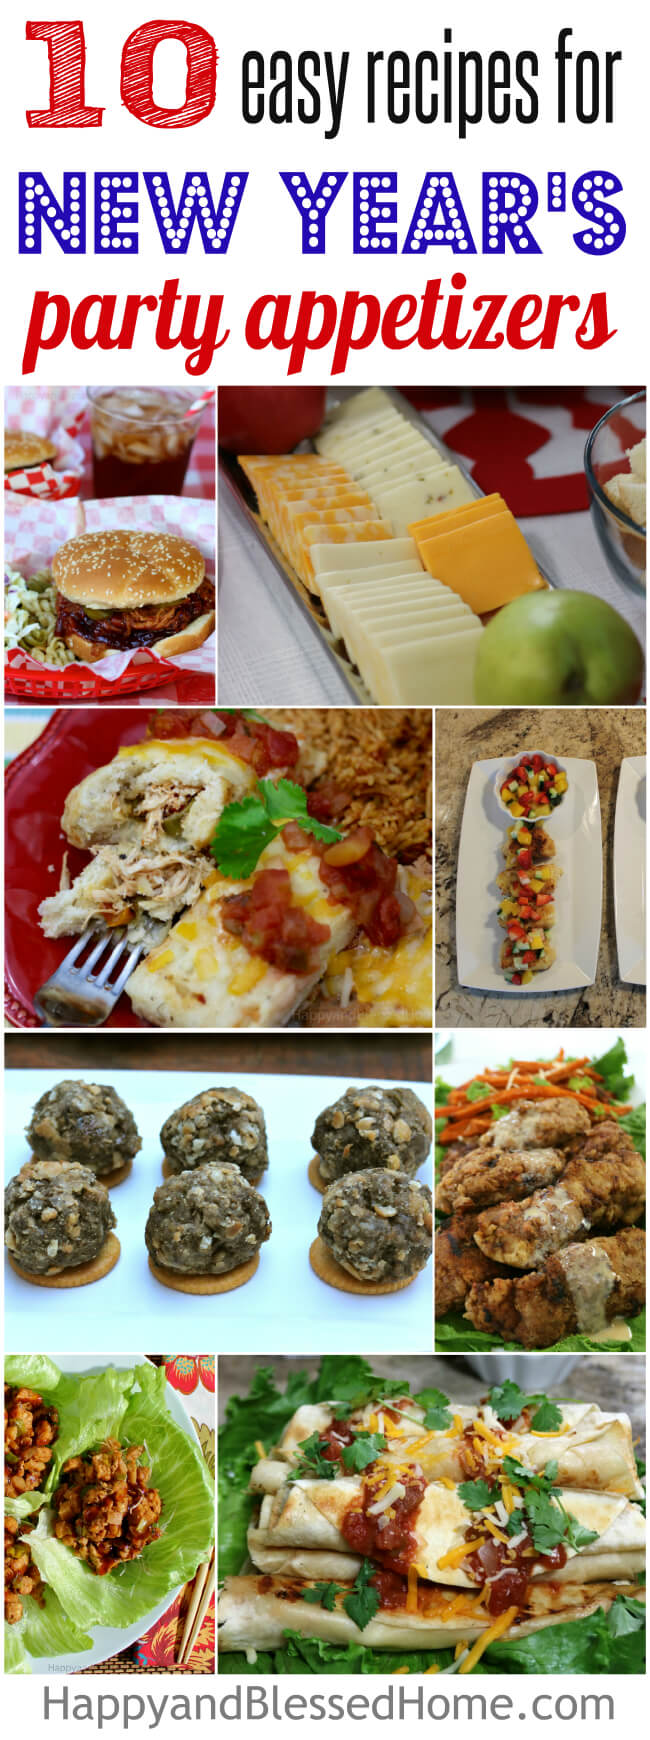 All of these look so good - I can't decide -- how do you choose from 10 amazingly tasty recipes